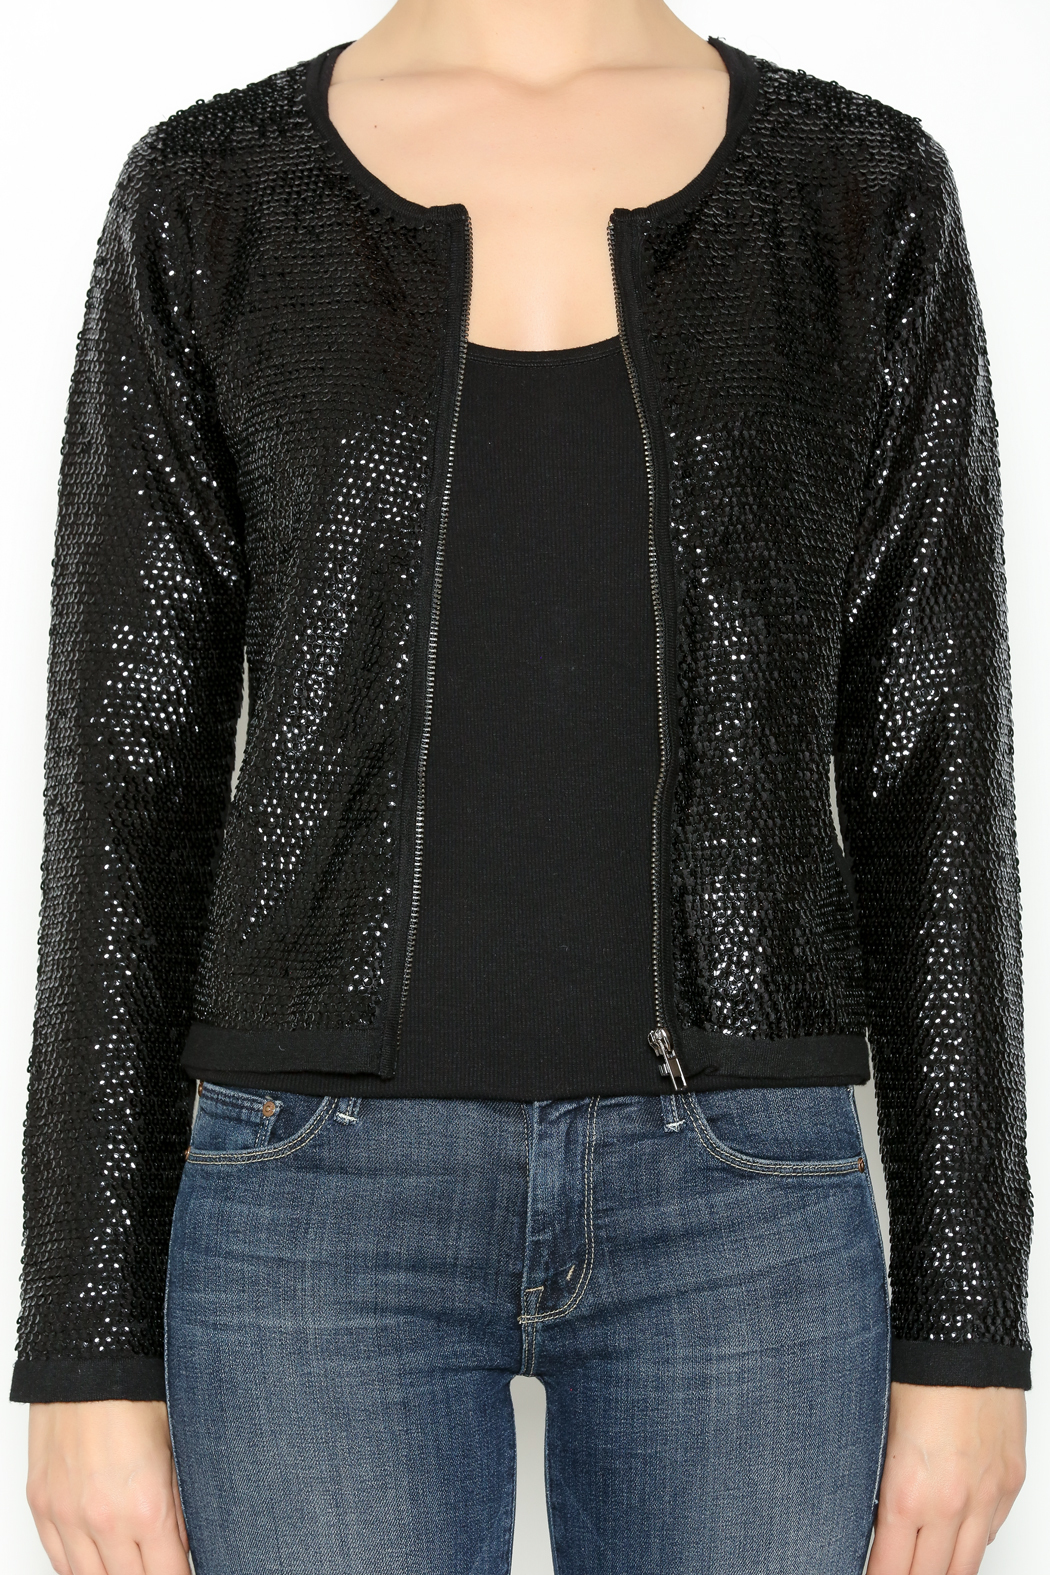 Olivaceous Sequin Cardigan Jacket From Michigan By Sparrow